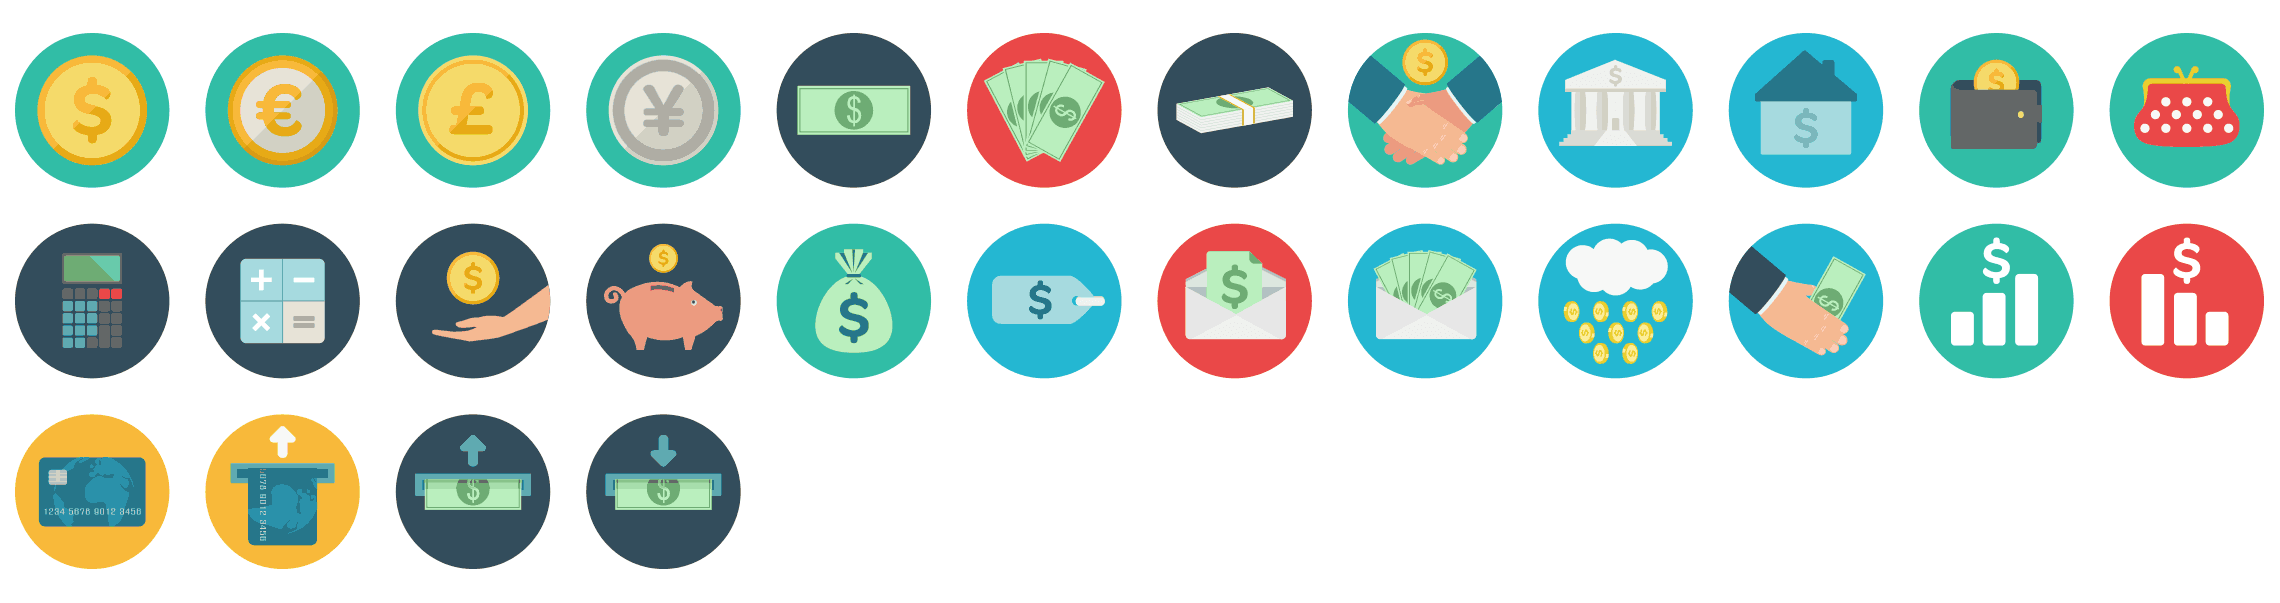 finance-flat-icons-vol-1-preview